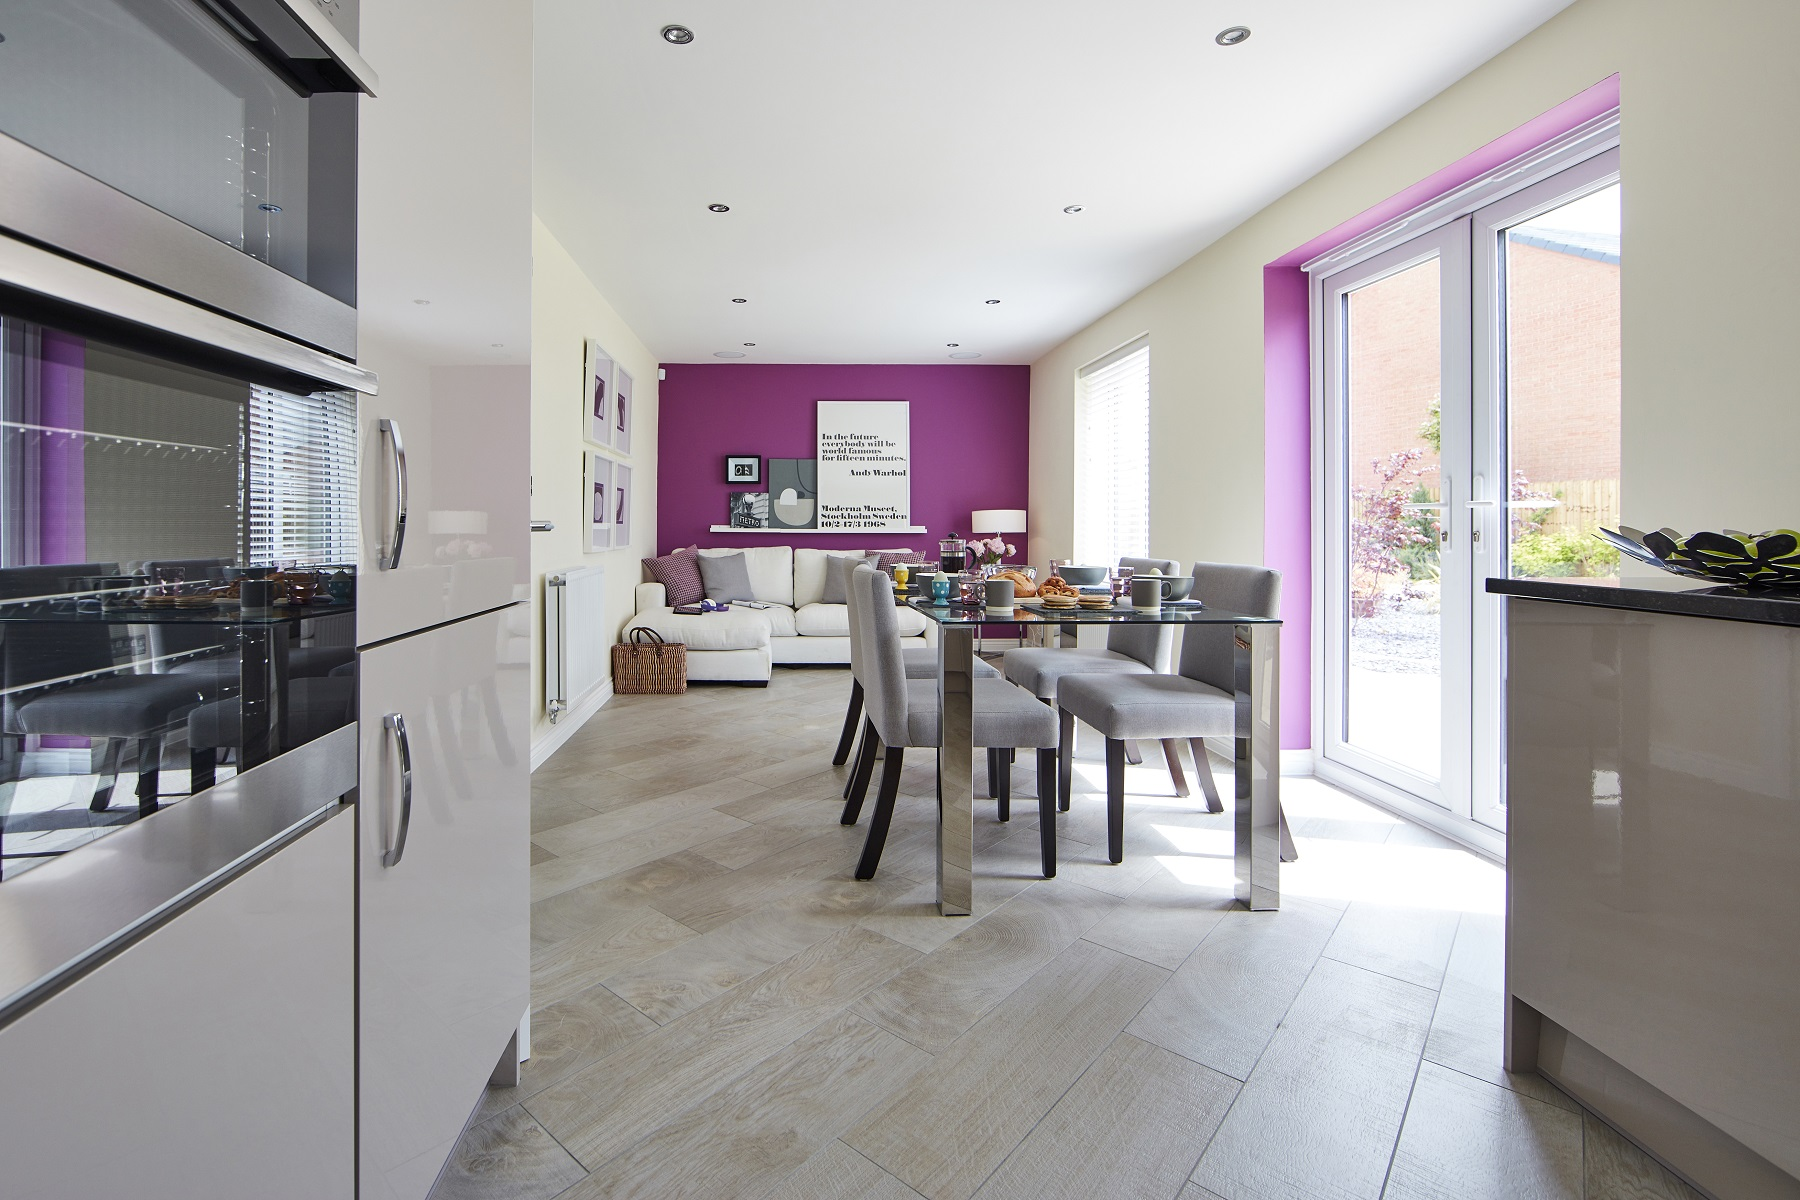 TW NWest_Stoneley Park_Crewe_PD49_Downham_Kitchen_Dining 3